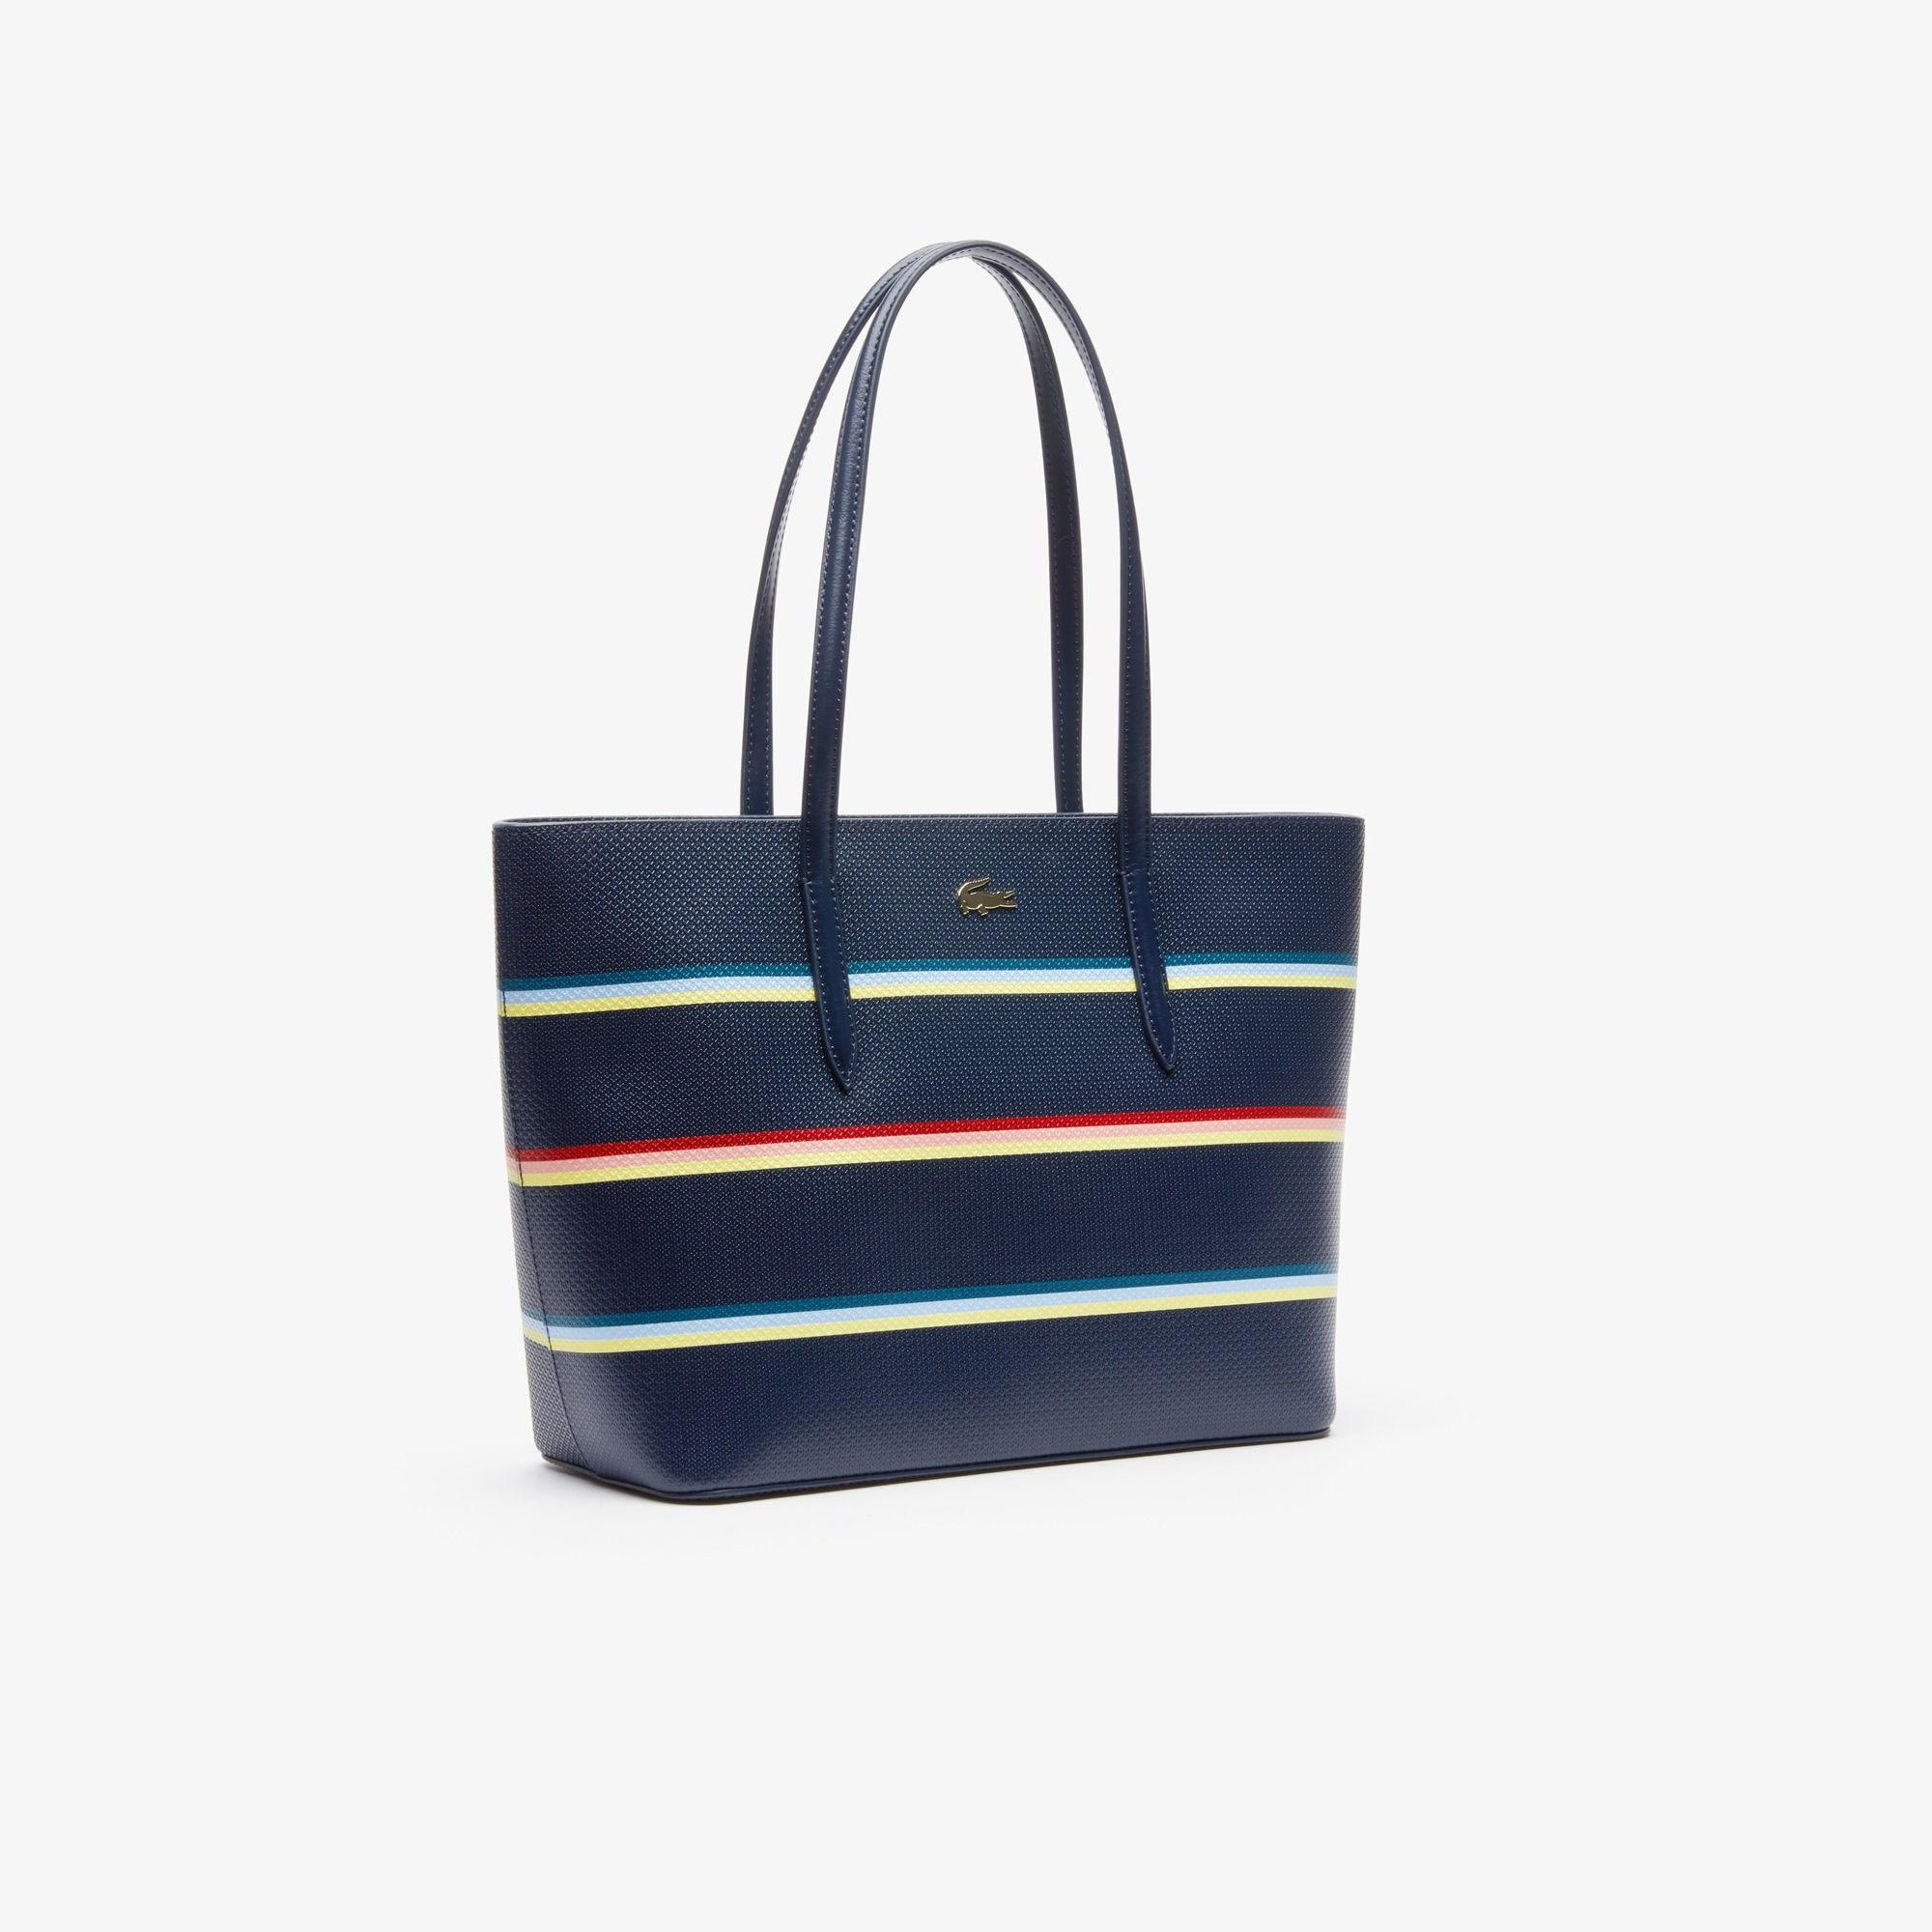 0a59d45248 Lyst - Lacoste Chantaco Leather Tote Bag in Blue